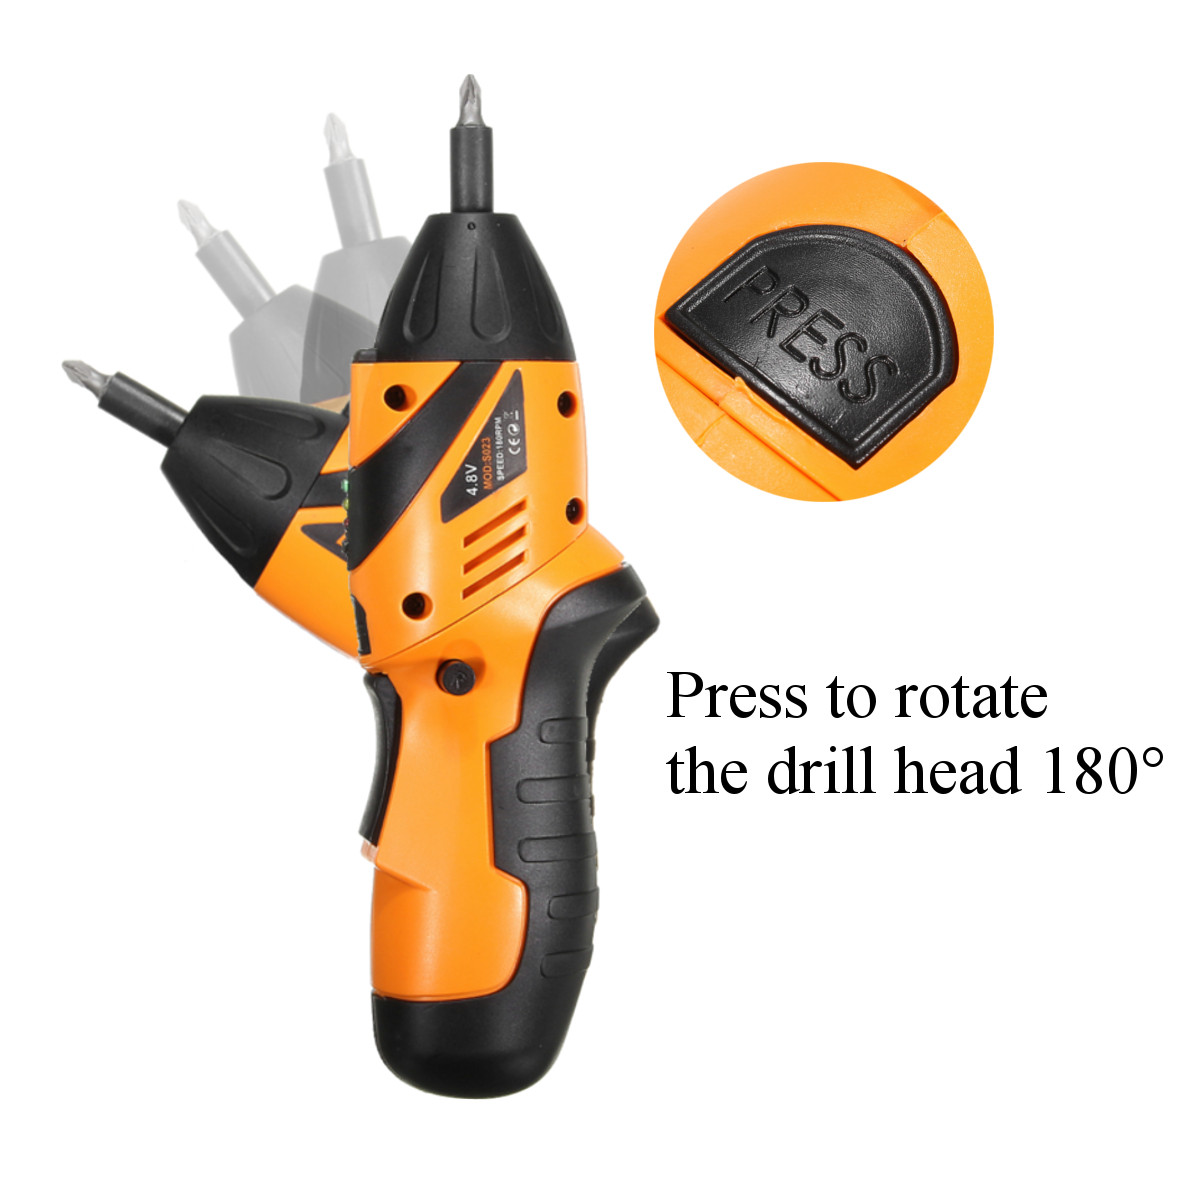 DCTOOLS 45 In 1 Non-slip Electric Drill Cordless Screwdriver Foldable with US Charger